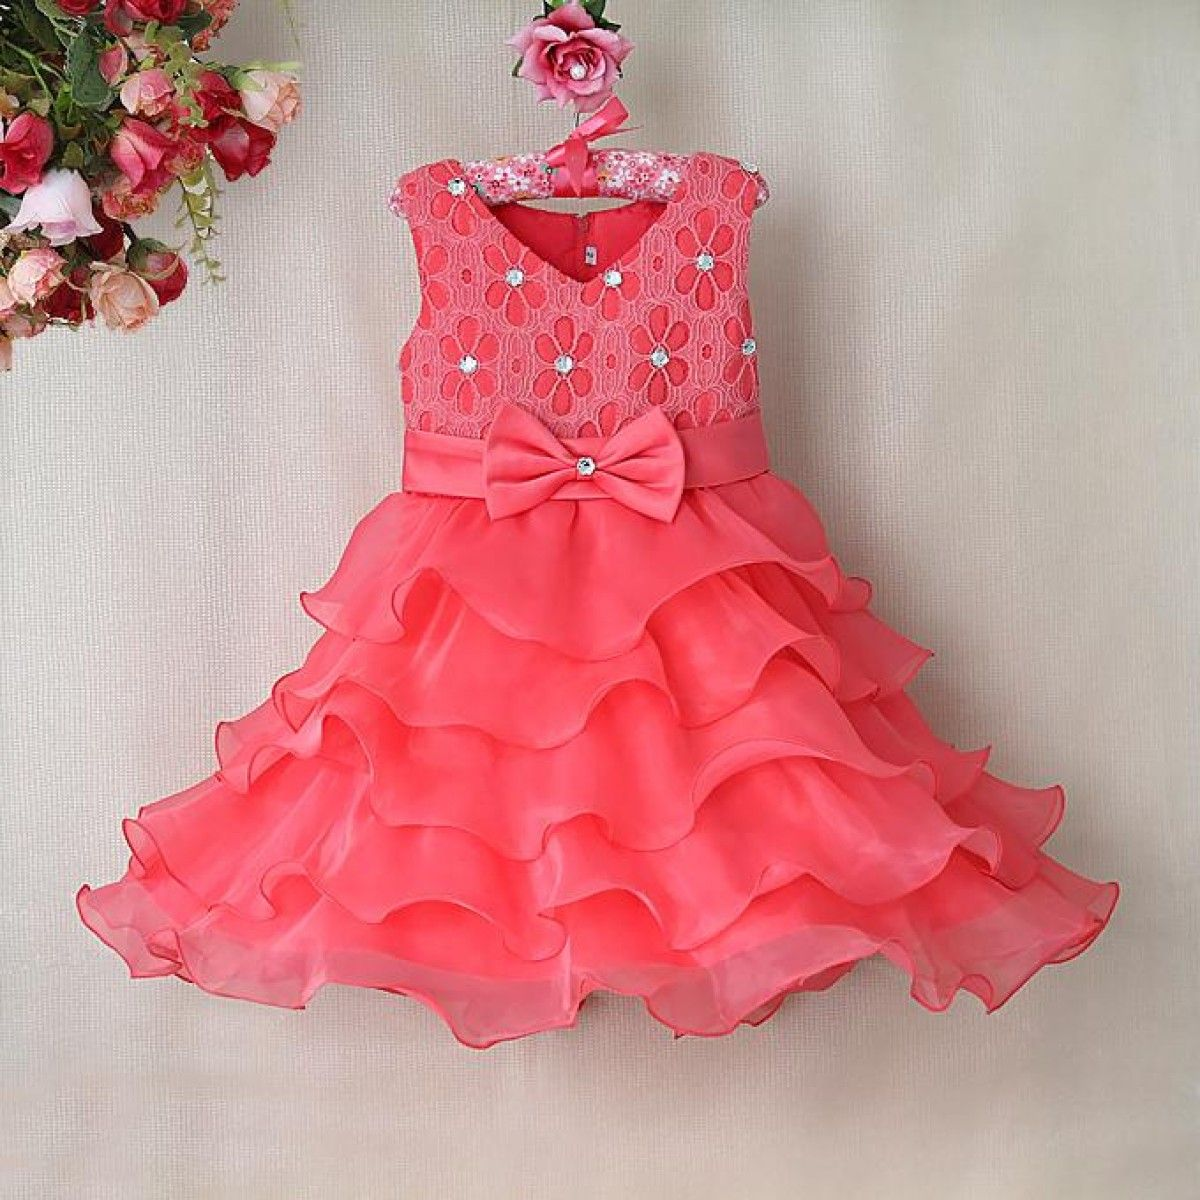 Gorgeous Peach Colored Ruffle Wedding Party Dress for